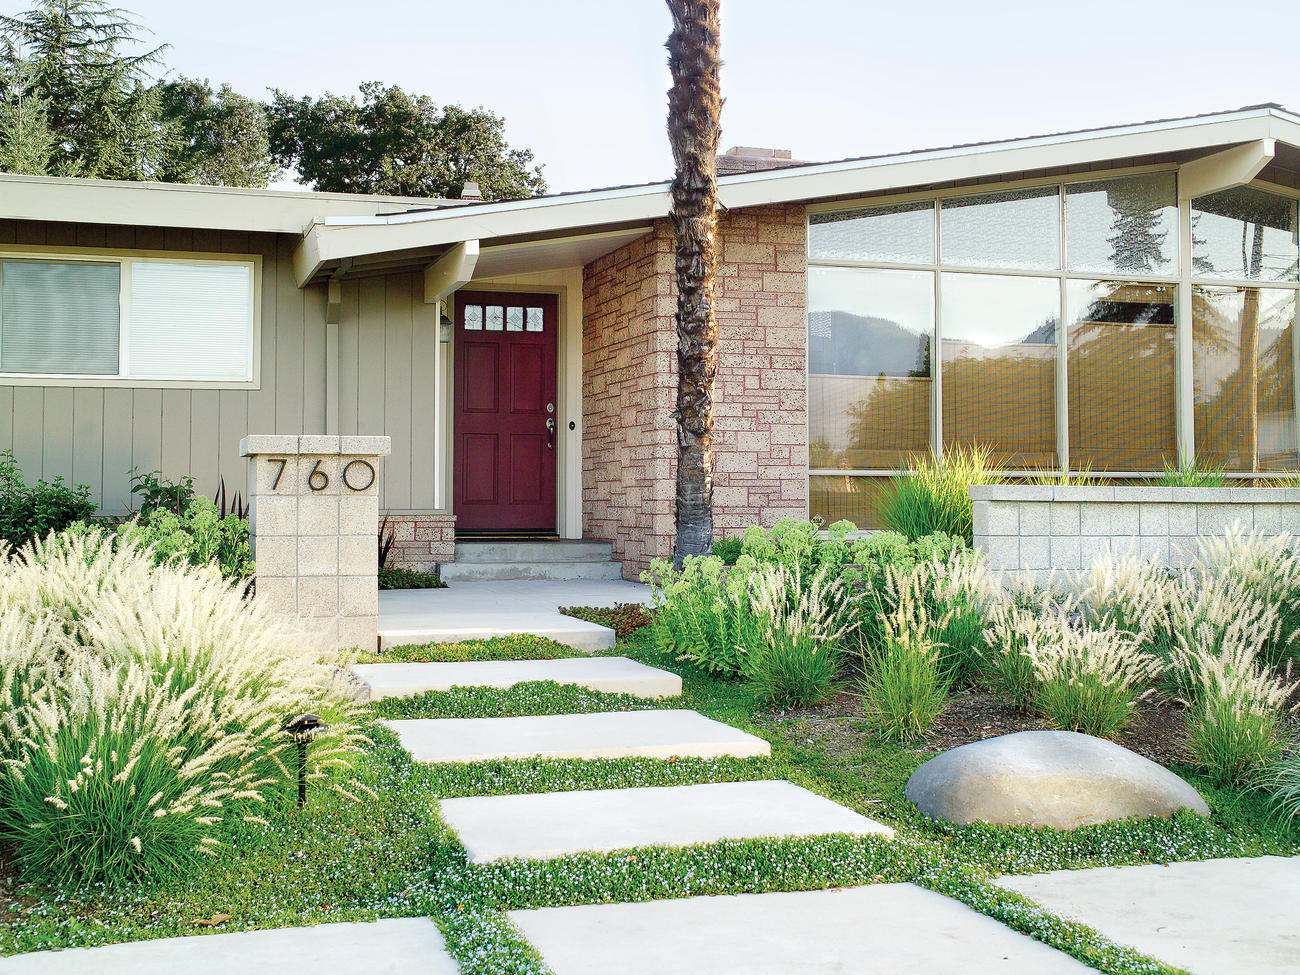 14 Easy Ideas for Instant Curb Appeal